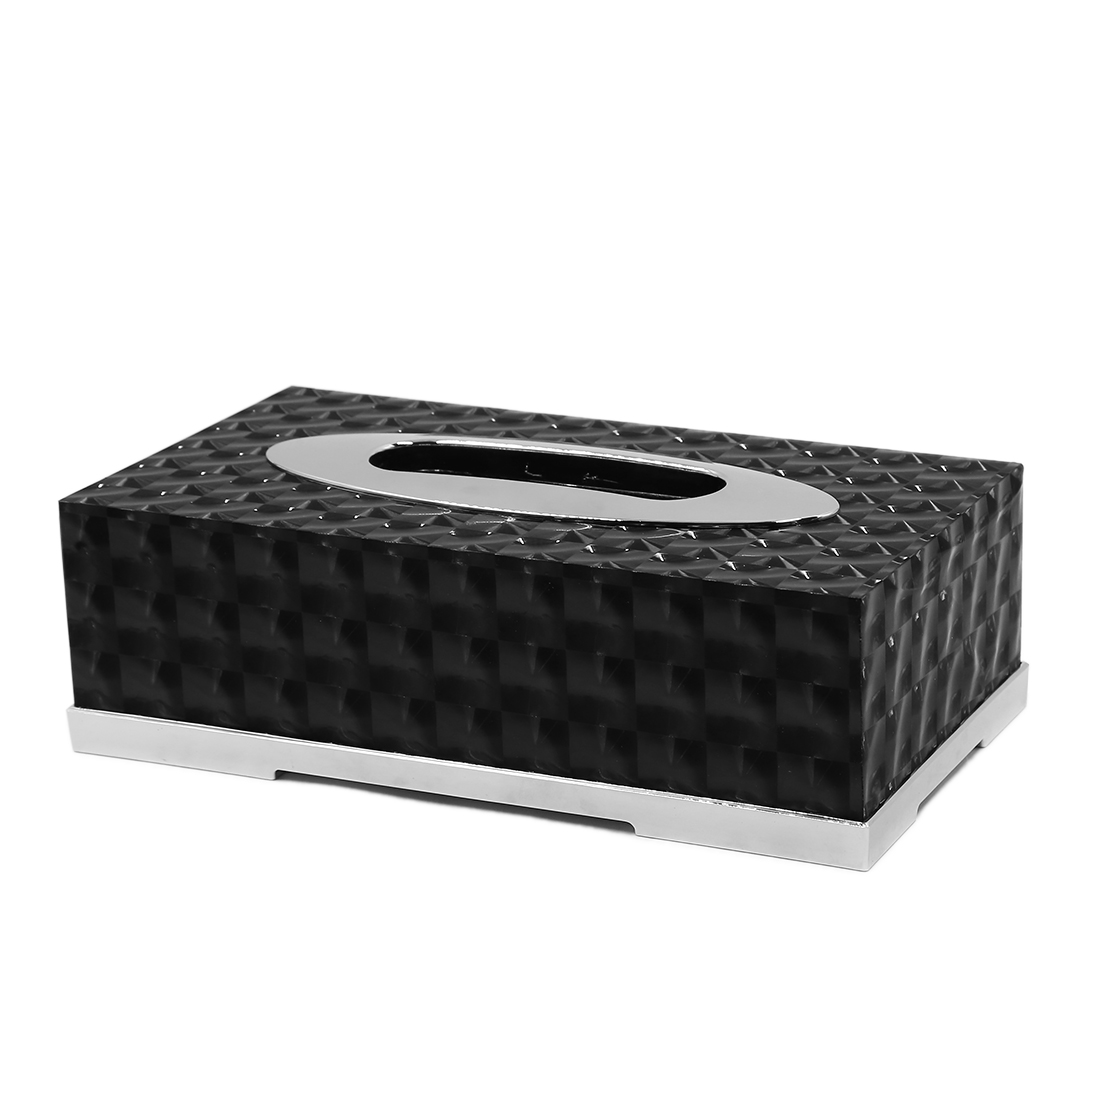 Black Metal Rectangular Napkin Paper Holder Case Tissue Box for Car Home Office